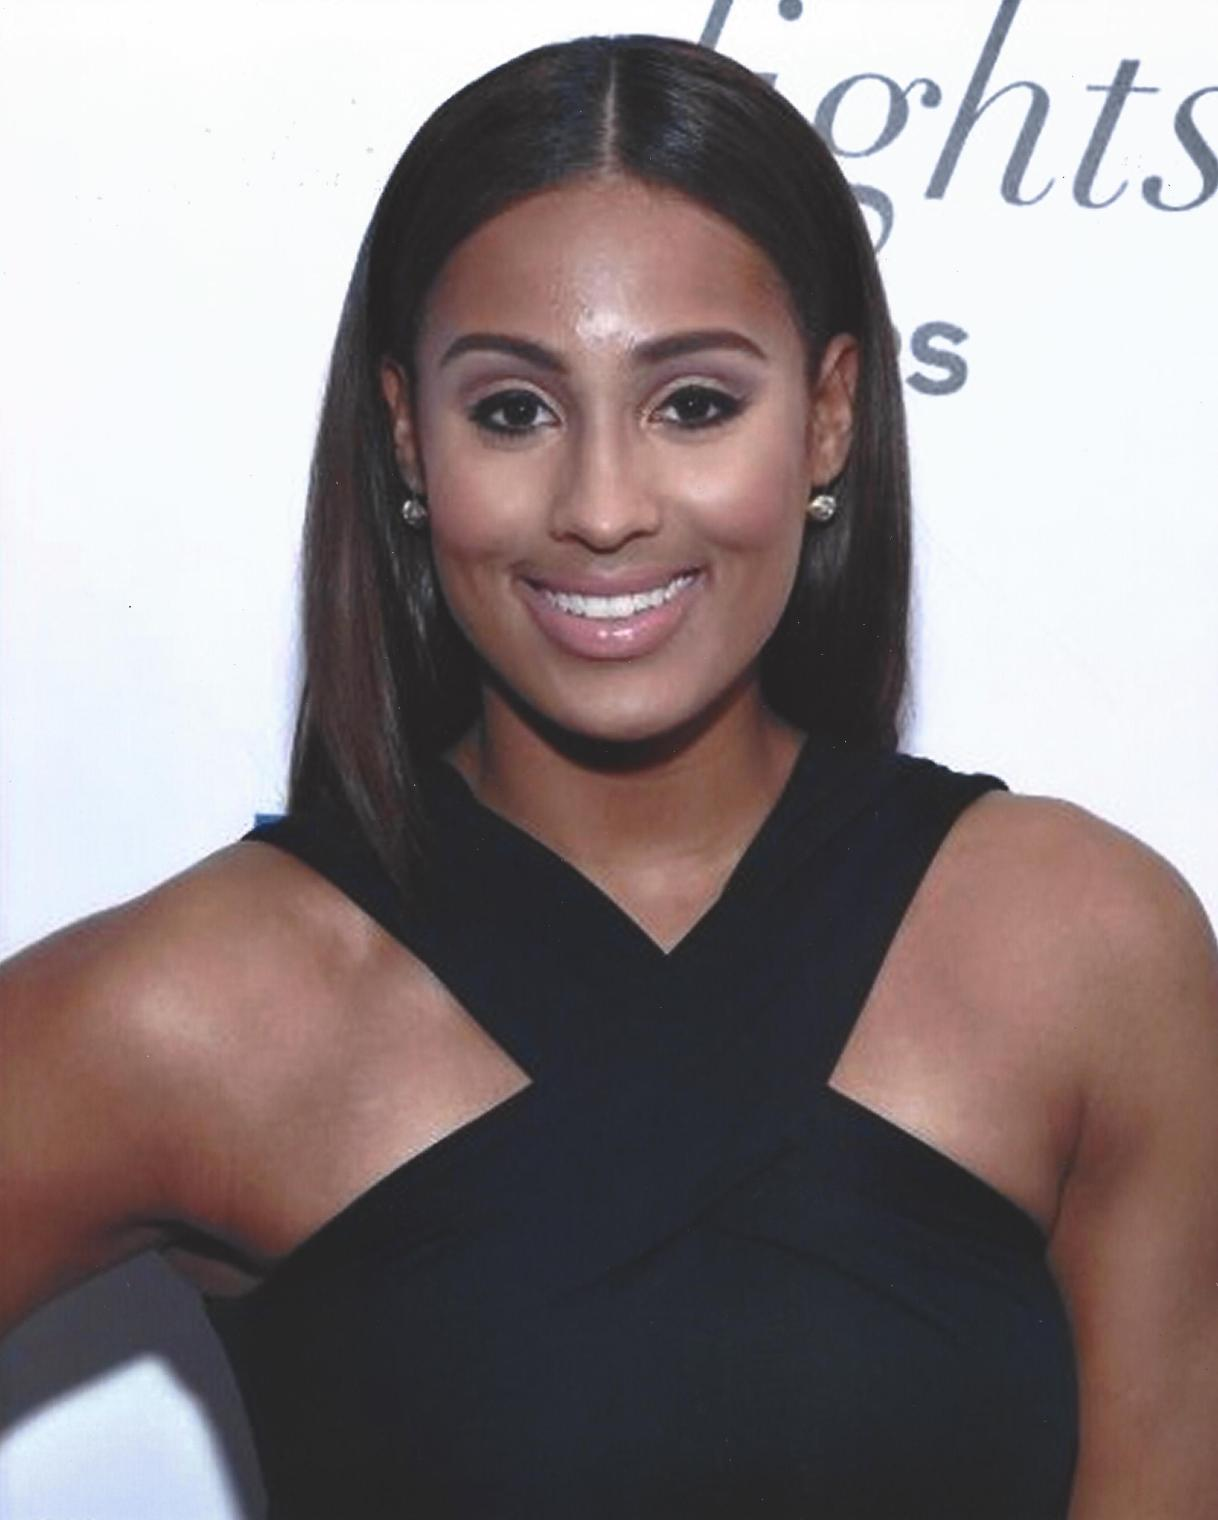 Photo of Skylar Diggins